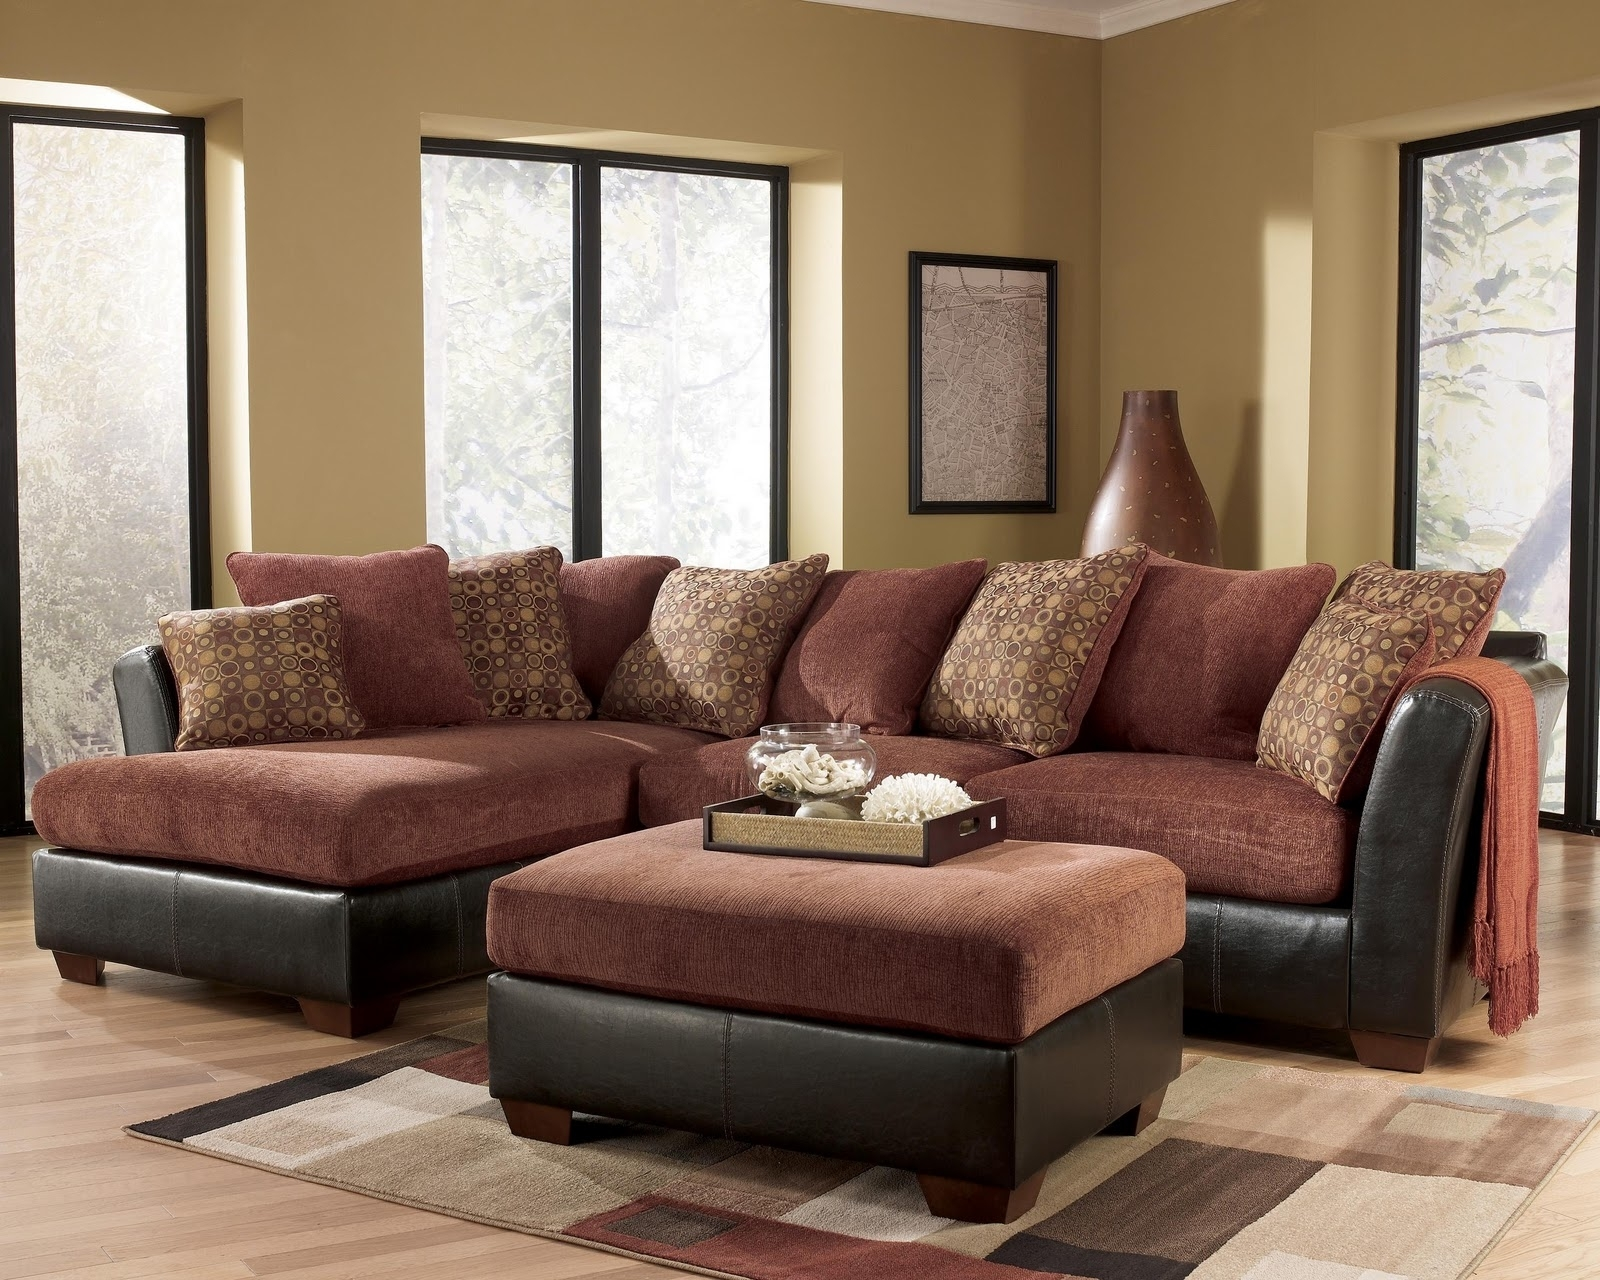 Ashley Furniture – Larson 31400 Cinnamon Sofa Sectional – Royal With Regard To Royal Furniture Sectional Sofas (View 5 of 10)